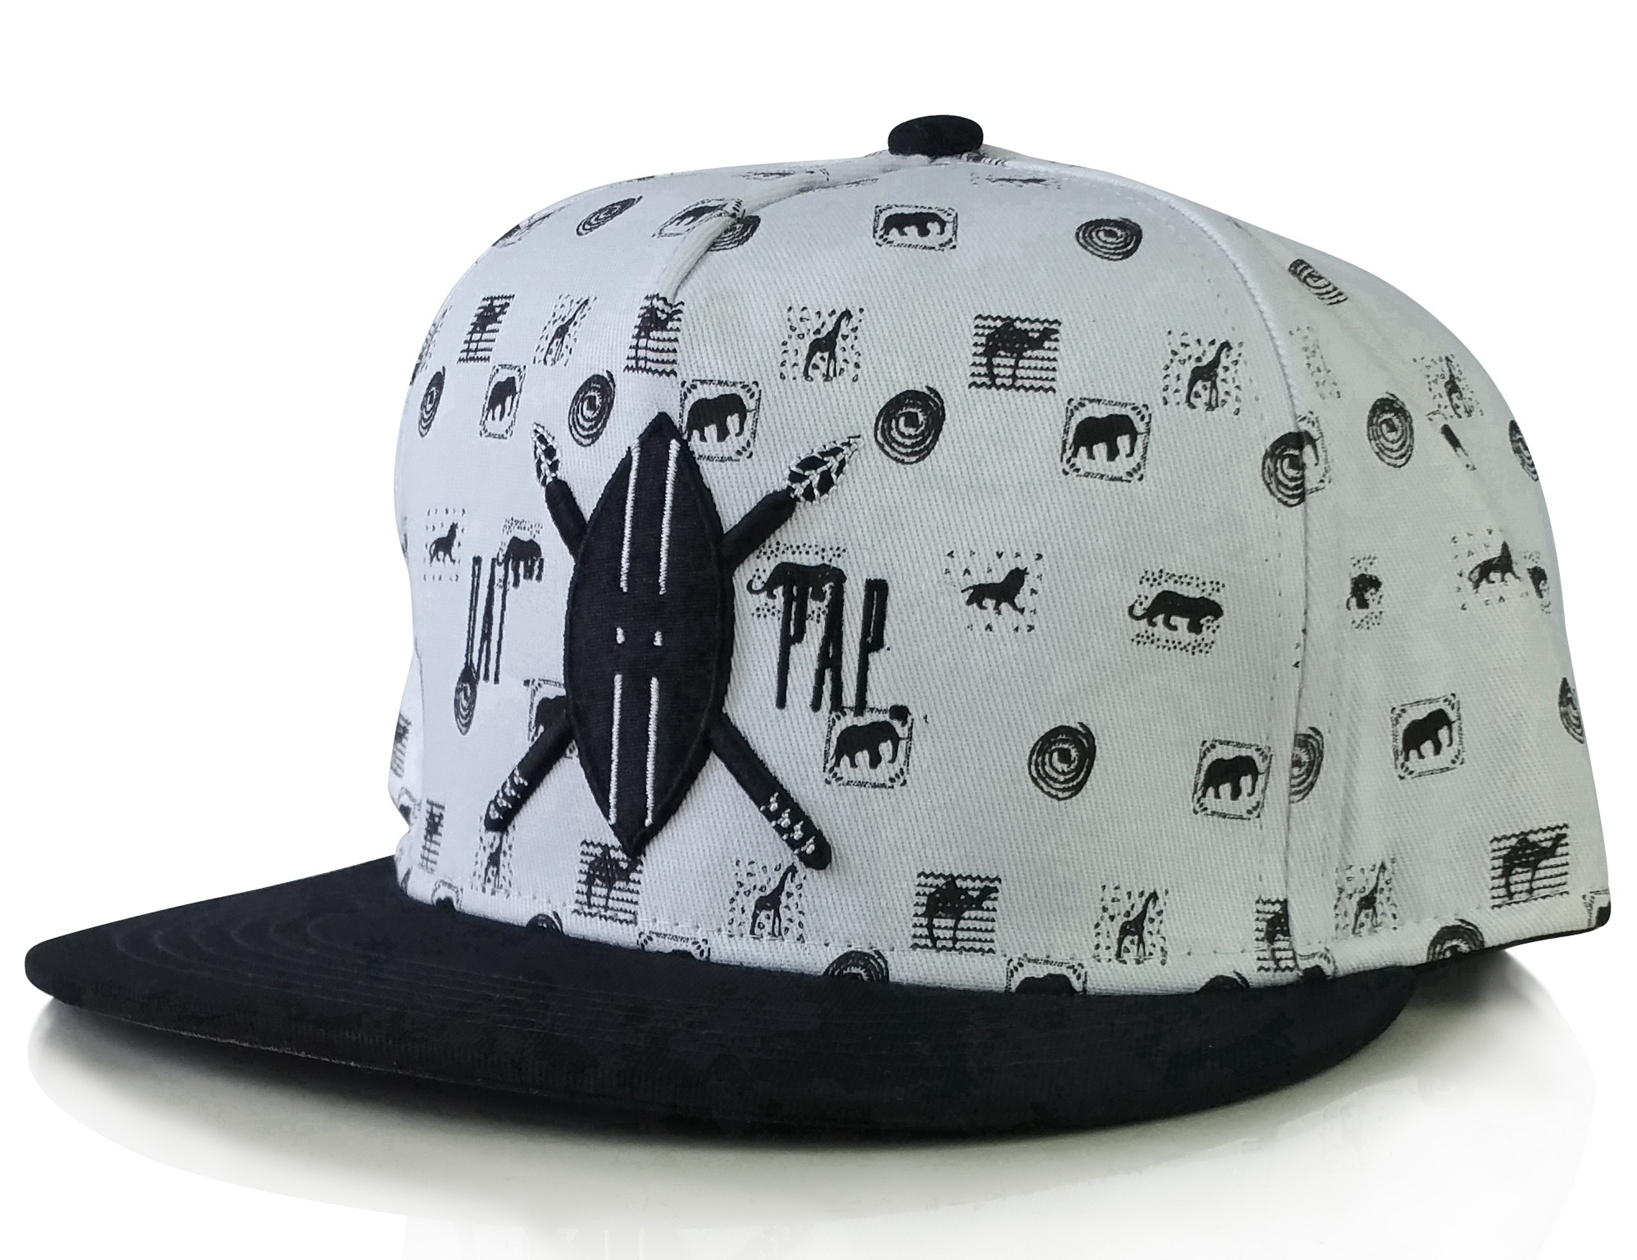 Custom 5 panel style with woven label snapback cap